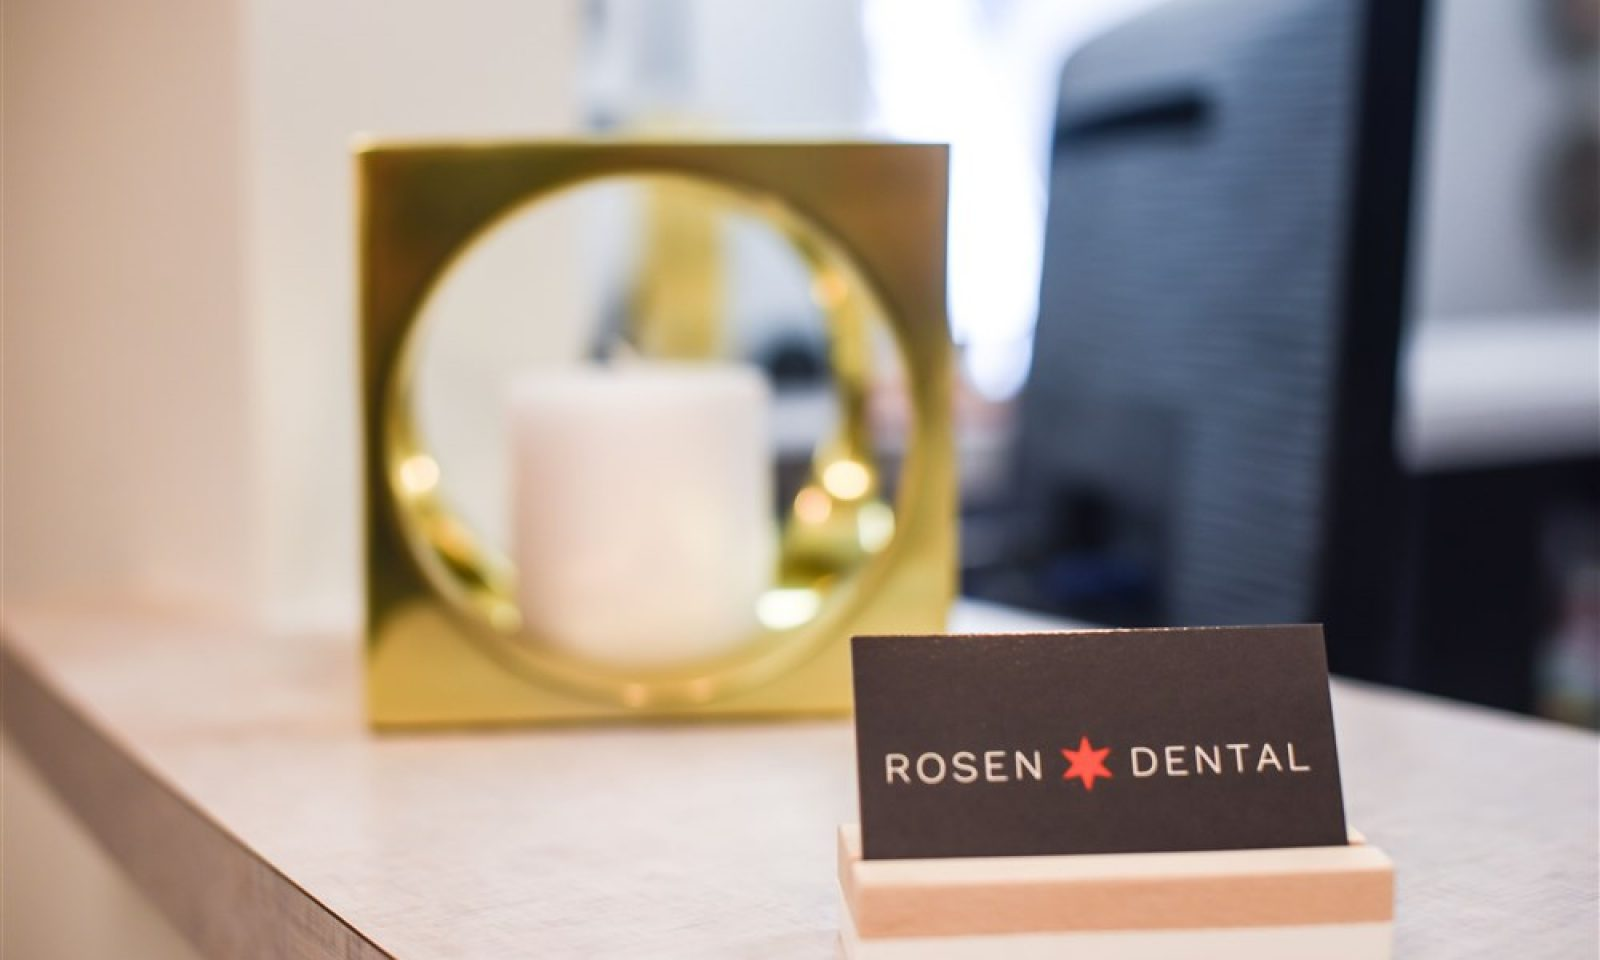 rosen-dental-card-1